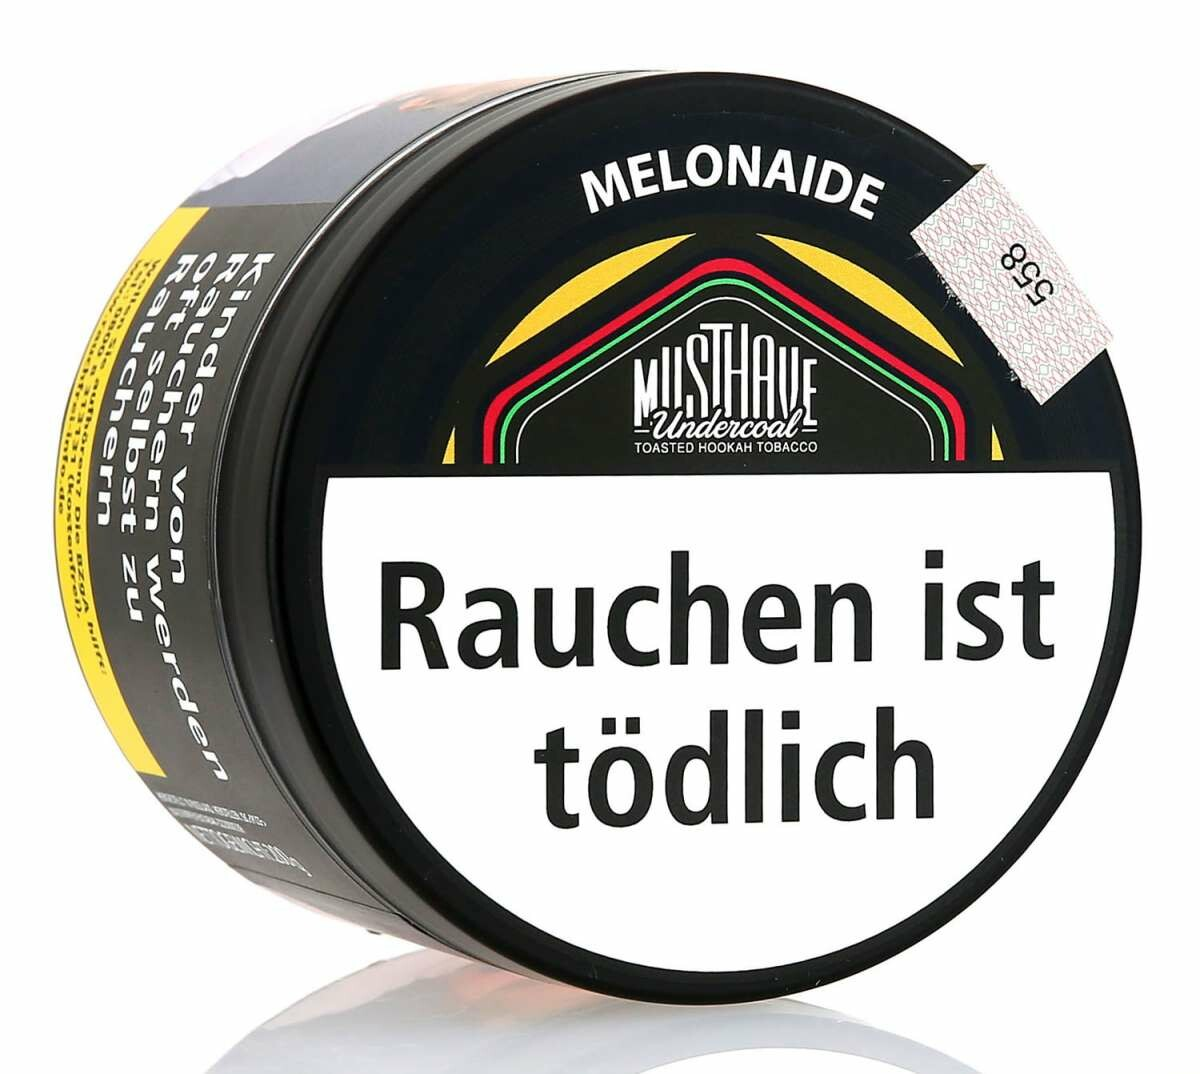 Musthave Tobacco - Melonaide 200g